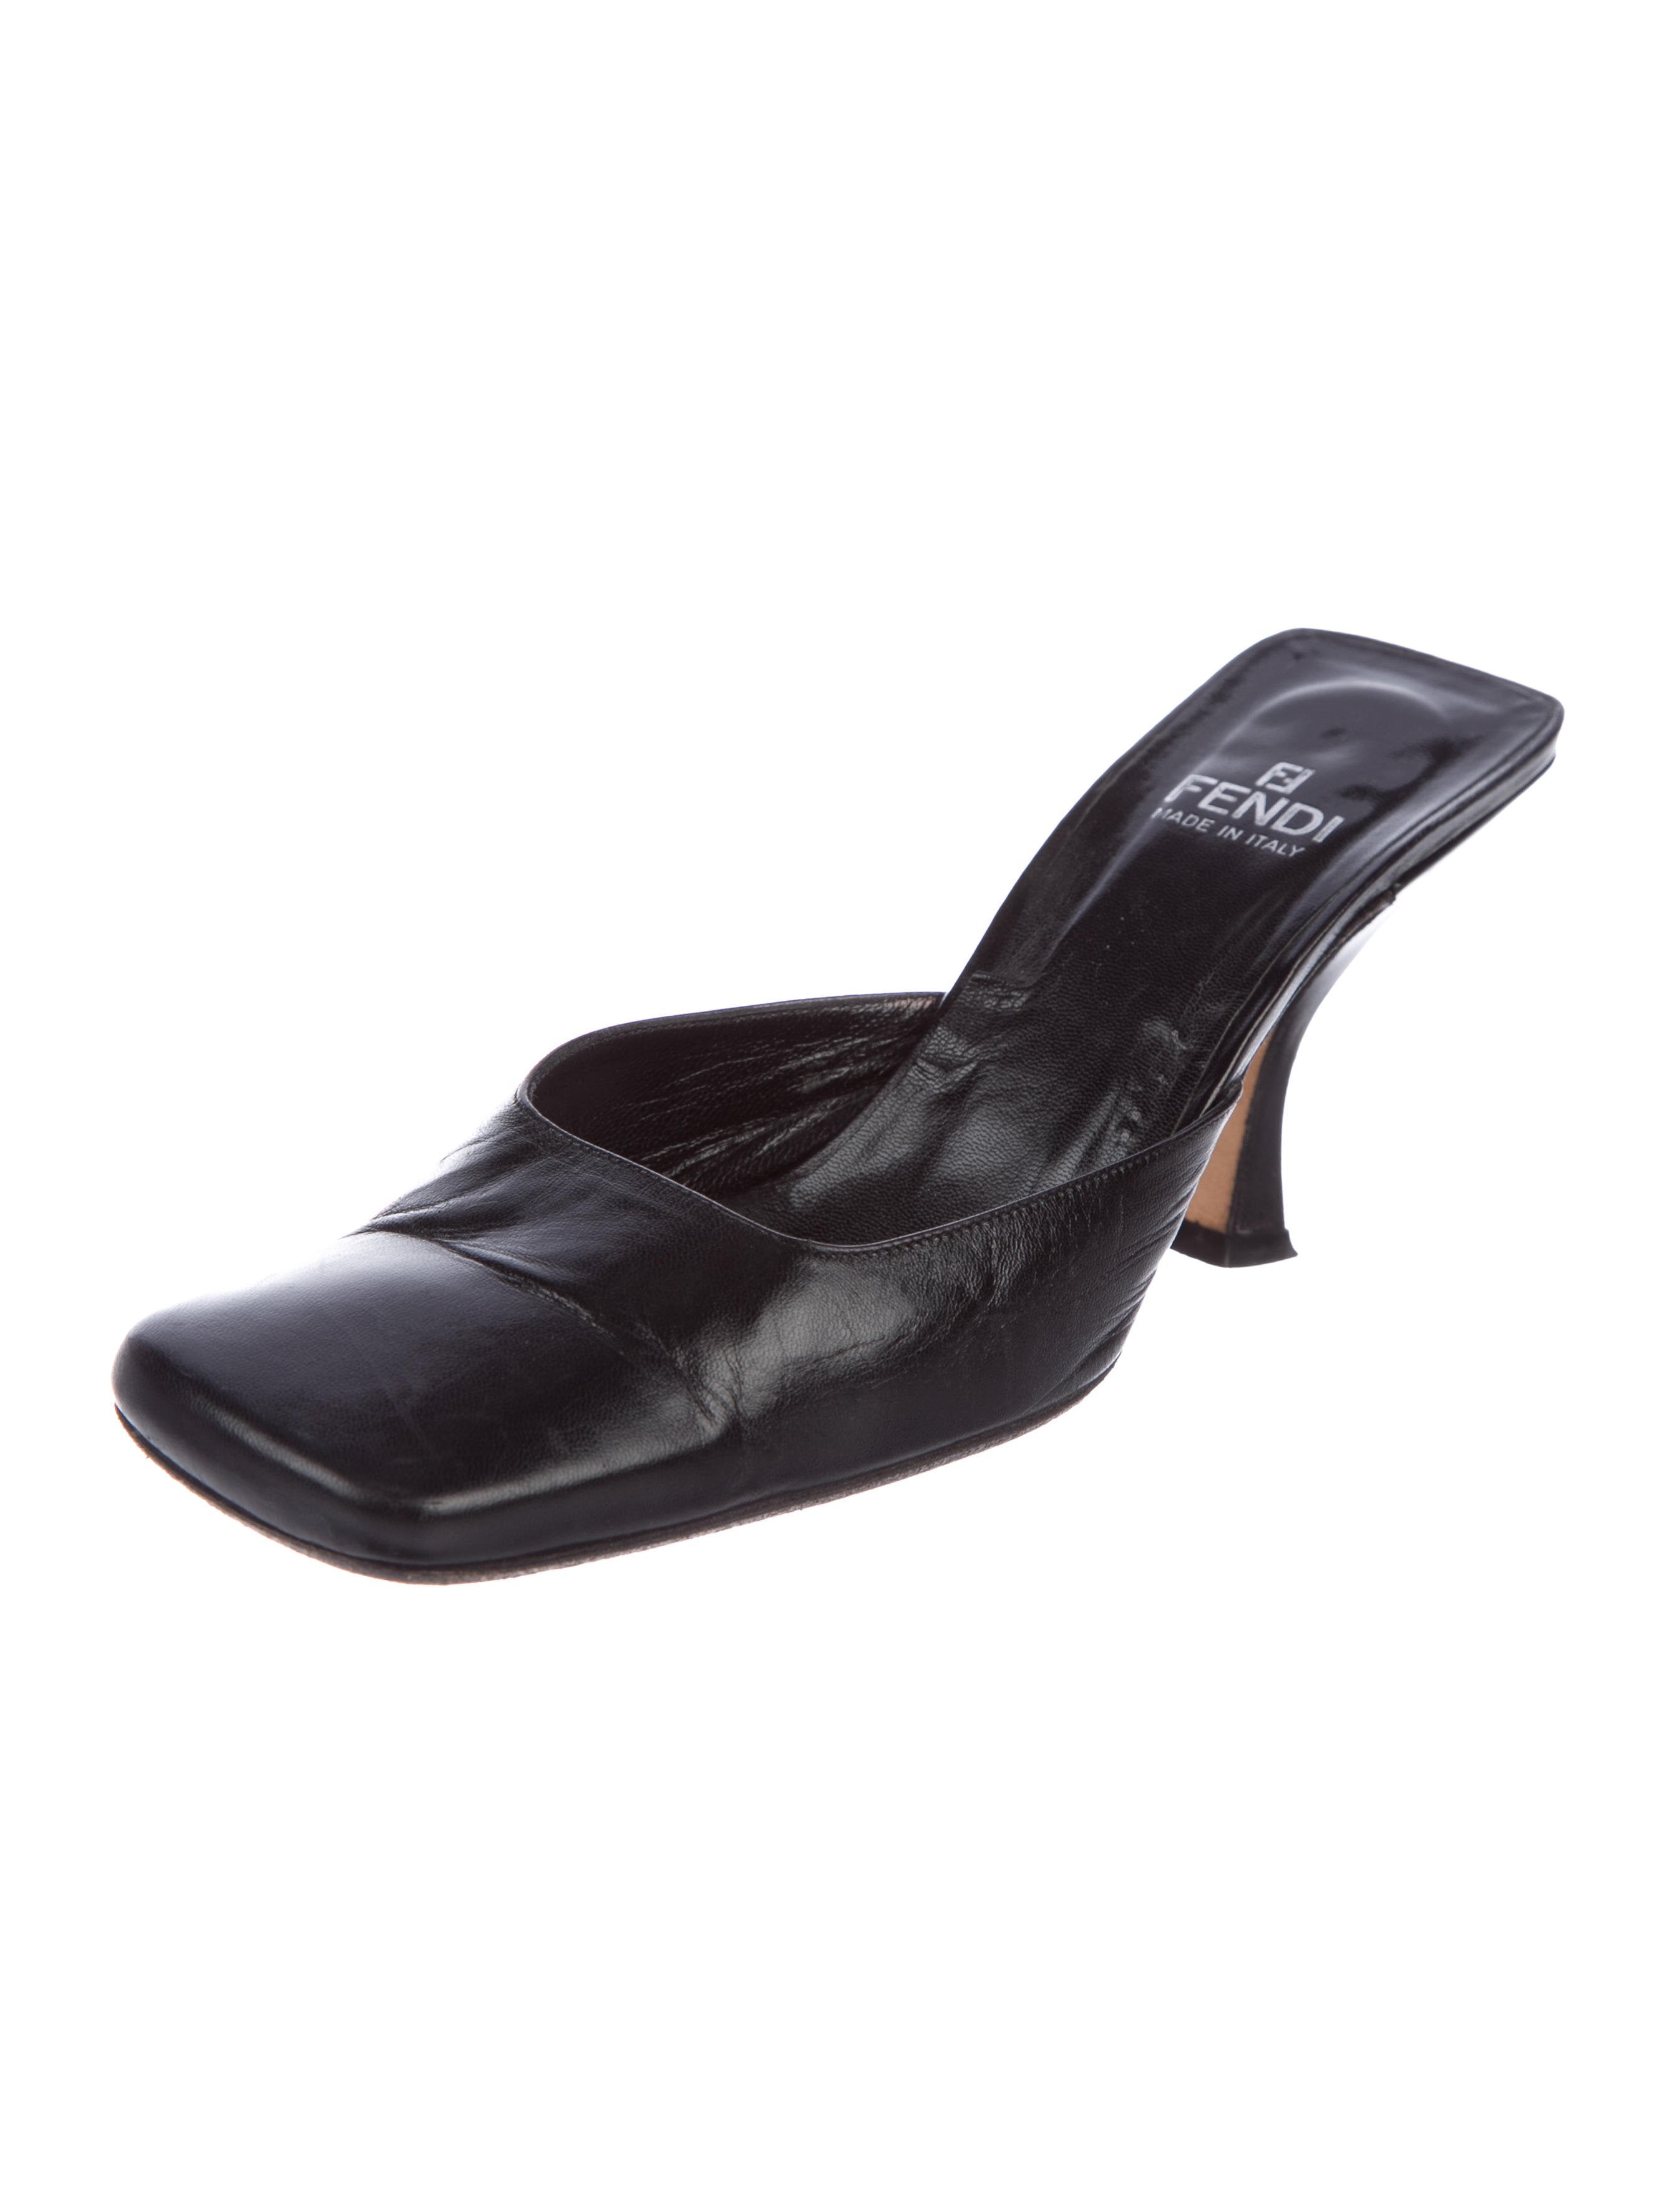 Fendi Leather Square-Toe Mules for sale buy authentic online discount 100% authentic geniue stockist online y8GfFnGdm